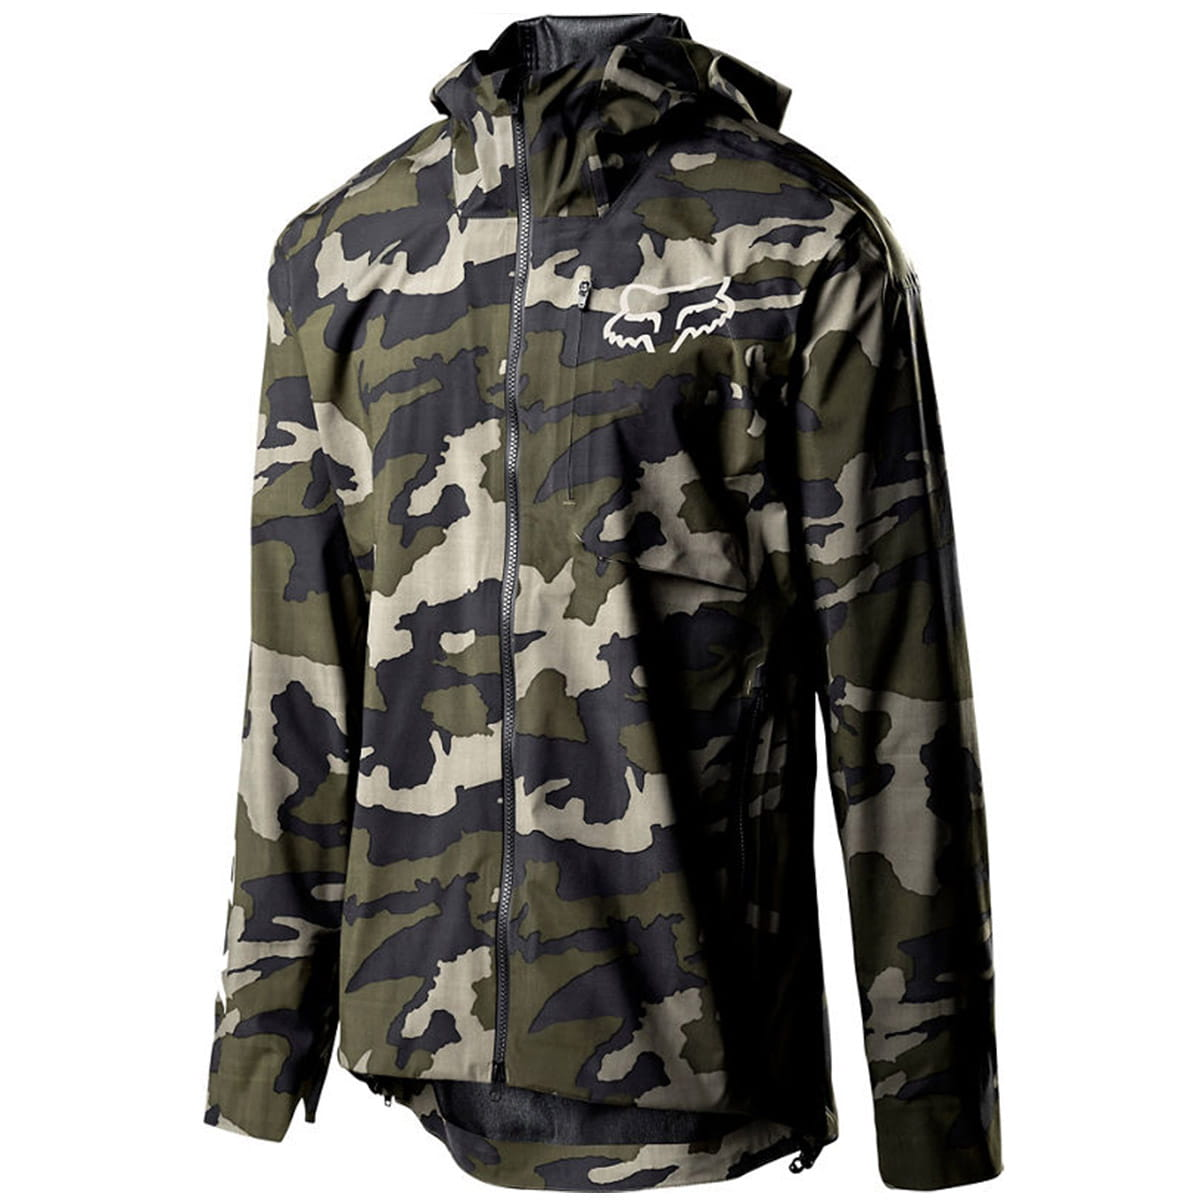 Flexair Pro 3L Rain Jacket Green Camo